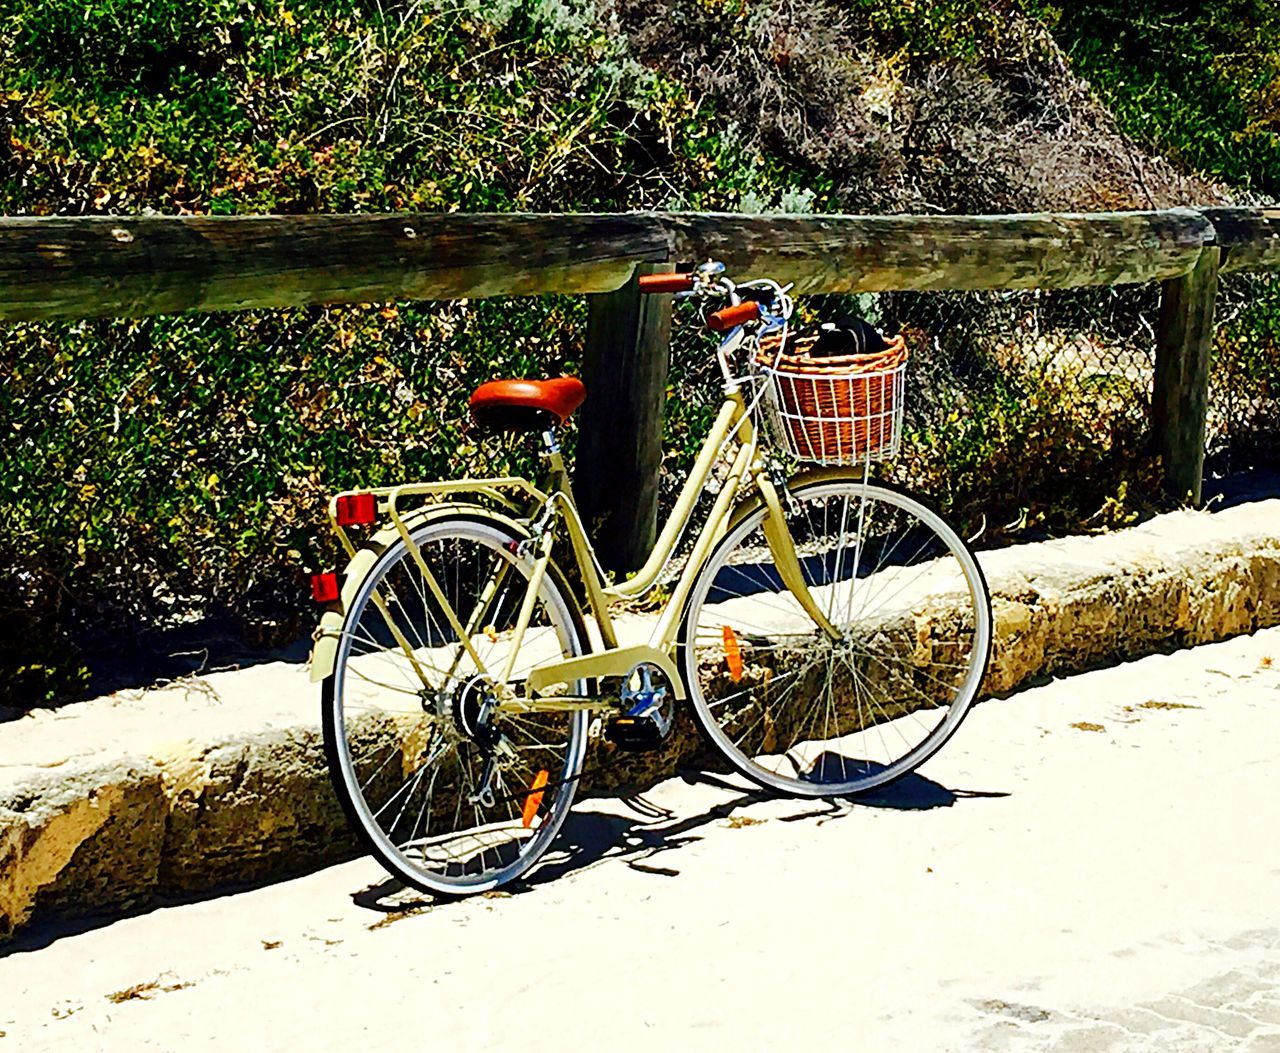 Beach Cruiser Bike Riding Bike Life Cycling Sports Outdoor Recreation Beach Lifestyle Beach Life Vegetation Dune Weeds Green Dune Plants Beach Bike Hipster Transportation Bicyle Beach Cruiser Bike Bike Isolated Abandoned Bicycles